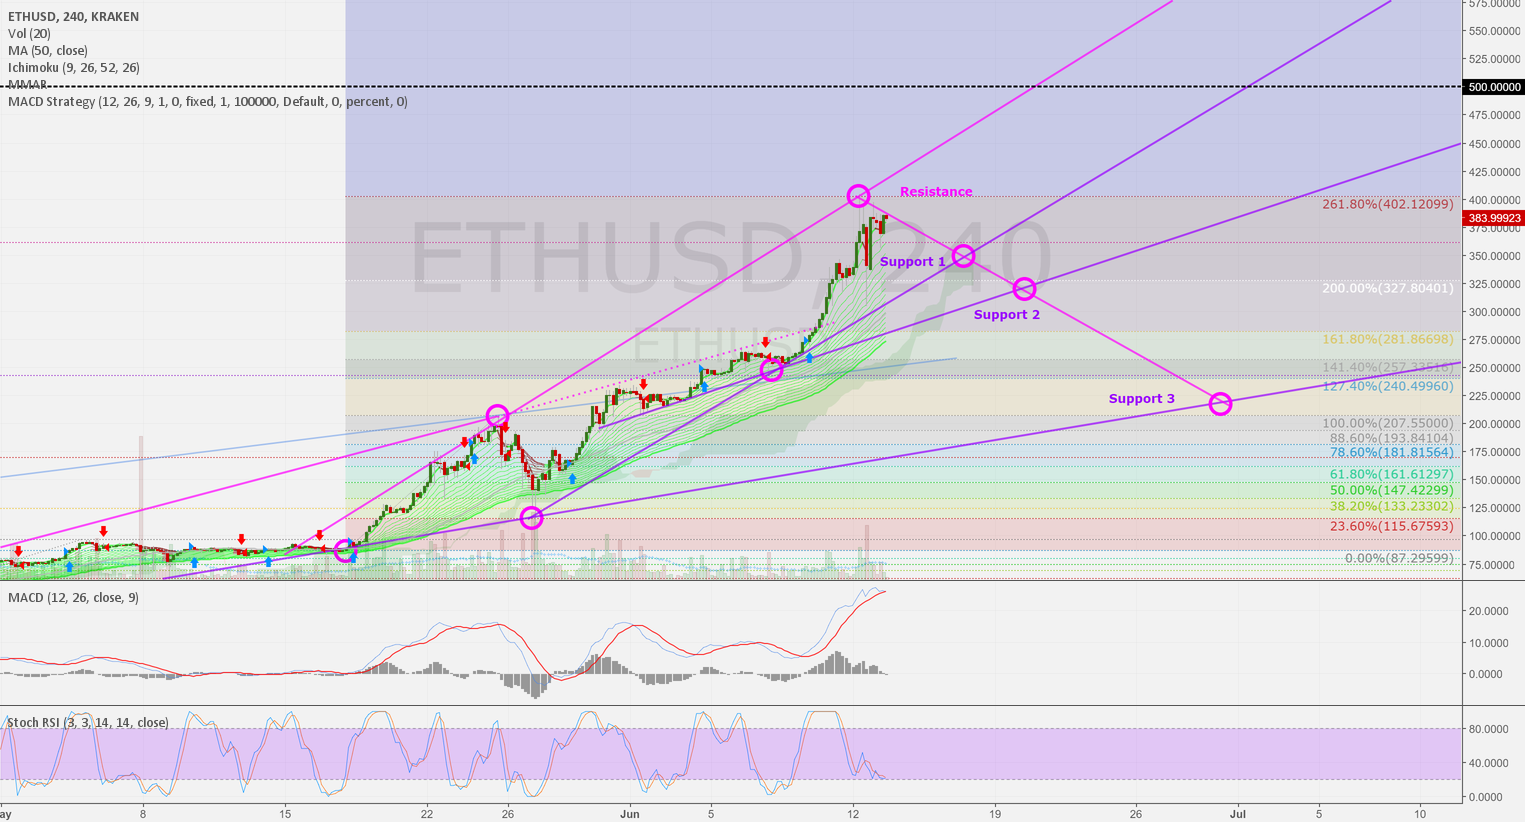 ETHUSD 4h: Forecast - Scenario 1, 2 or 3 than up to 500 USD